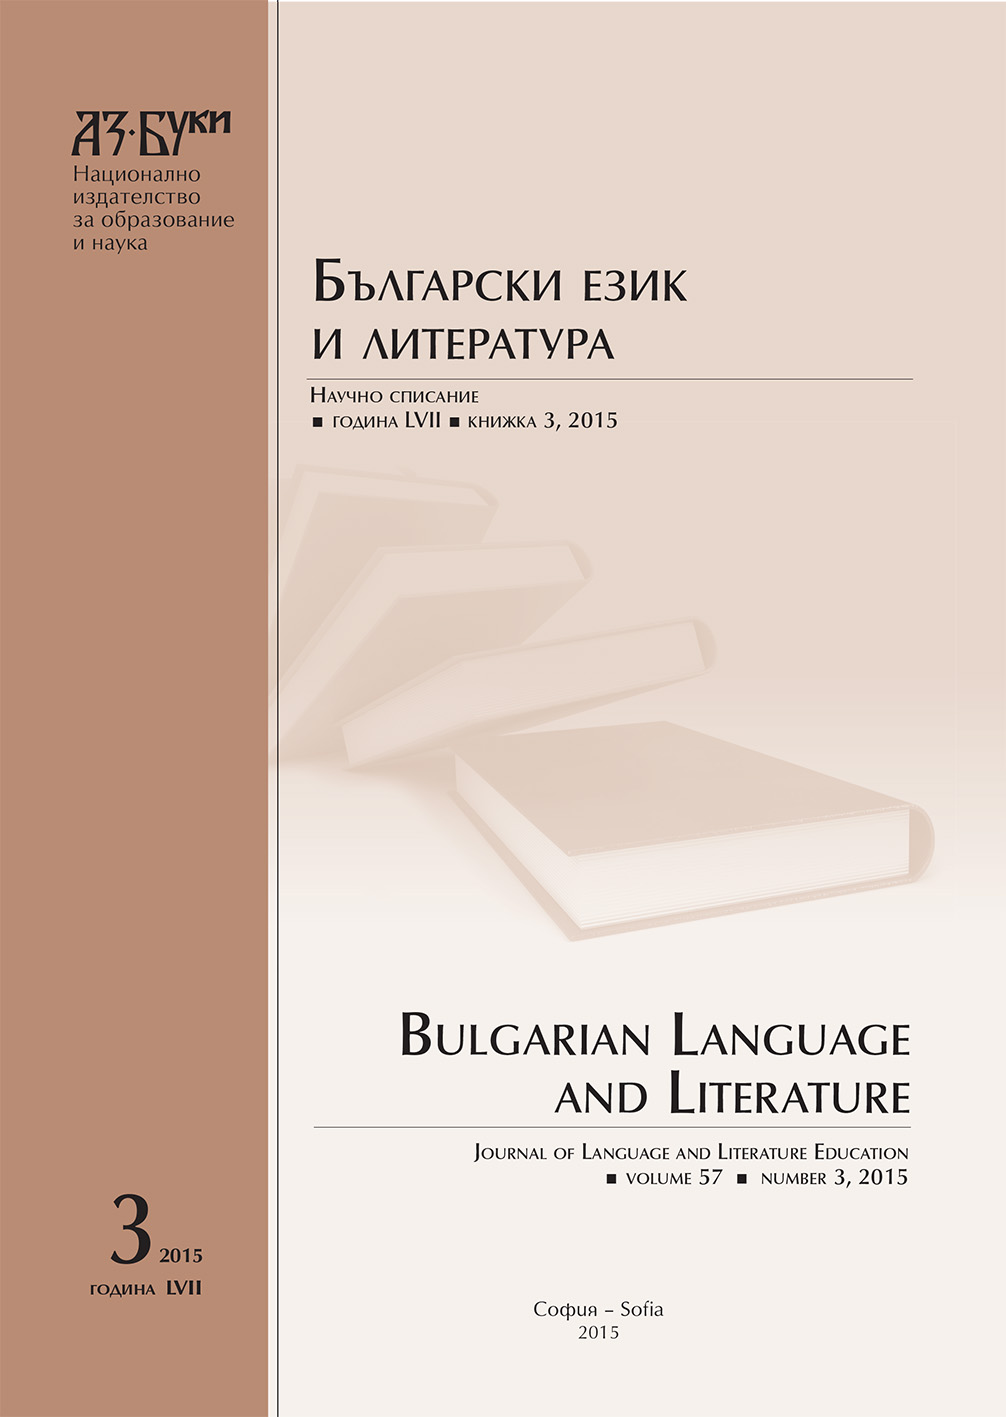 Saturday's Education in Bulgarian Language and Literature at Cologne, Germany Cover Image